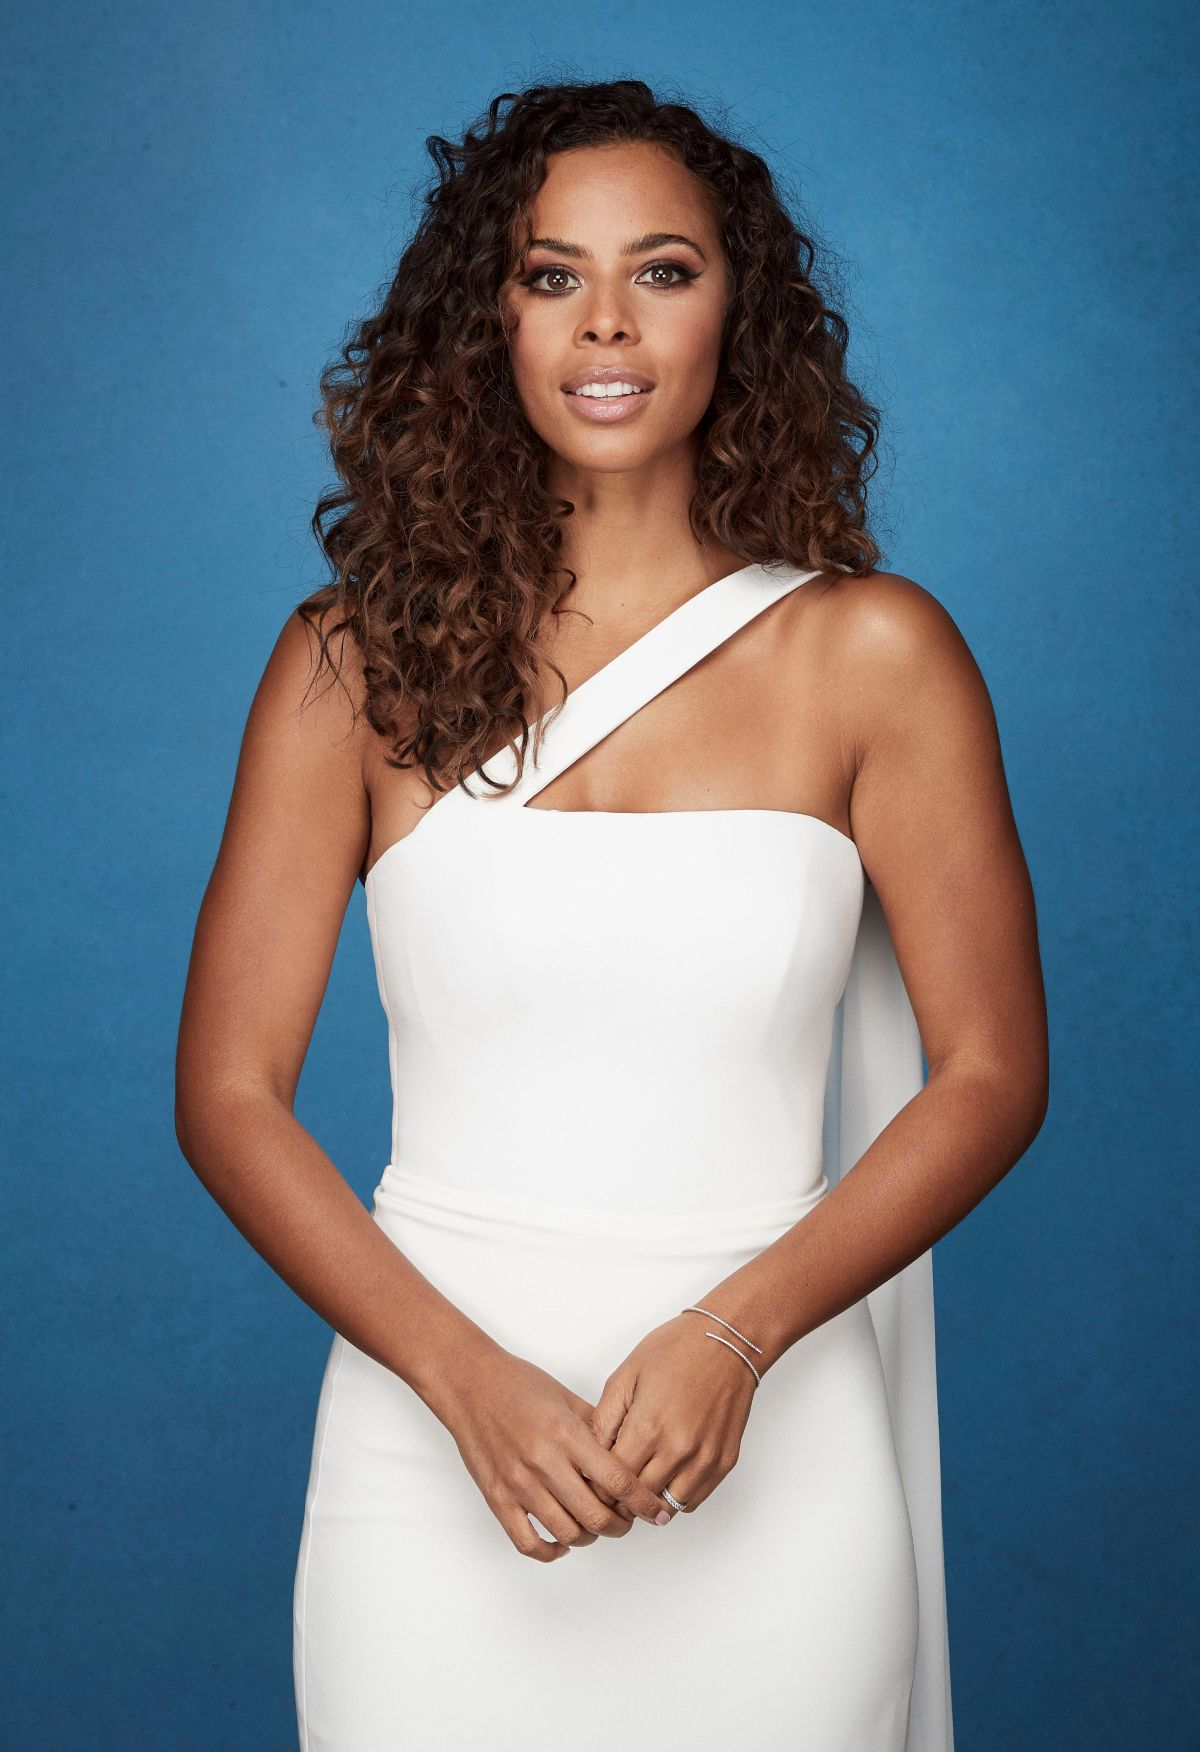 rochelle humes - photo #29